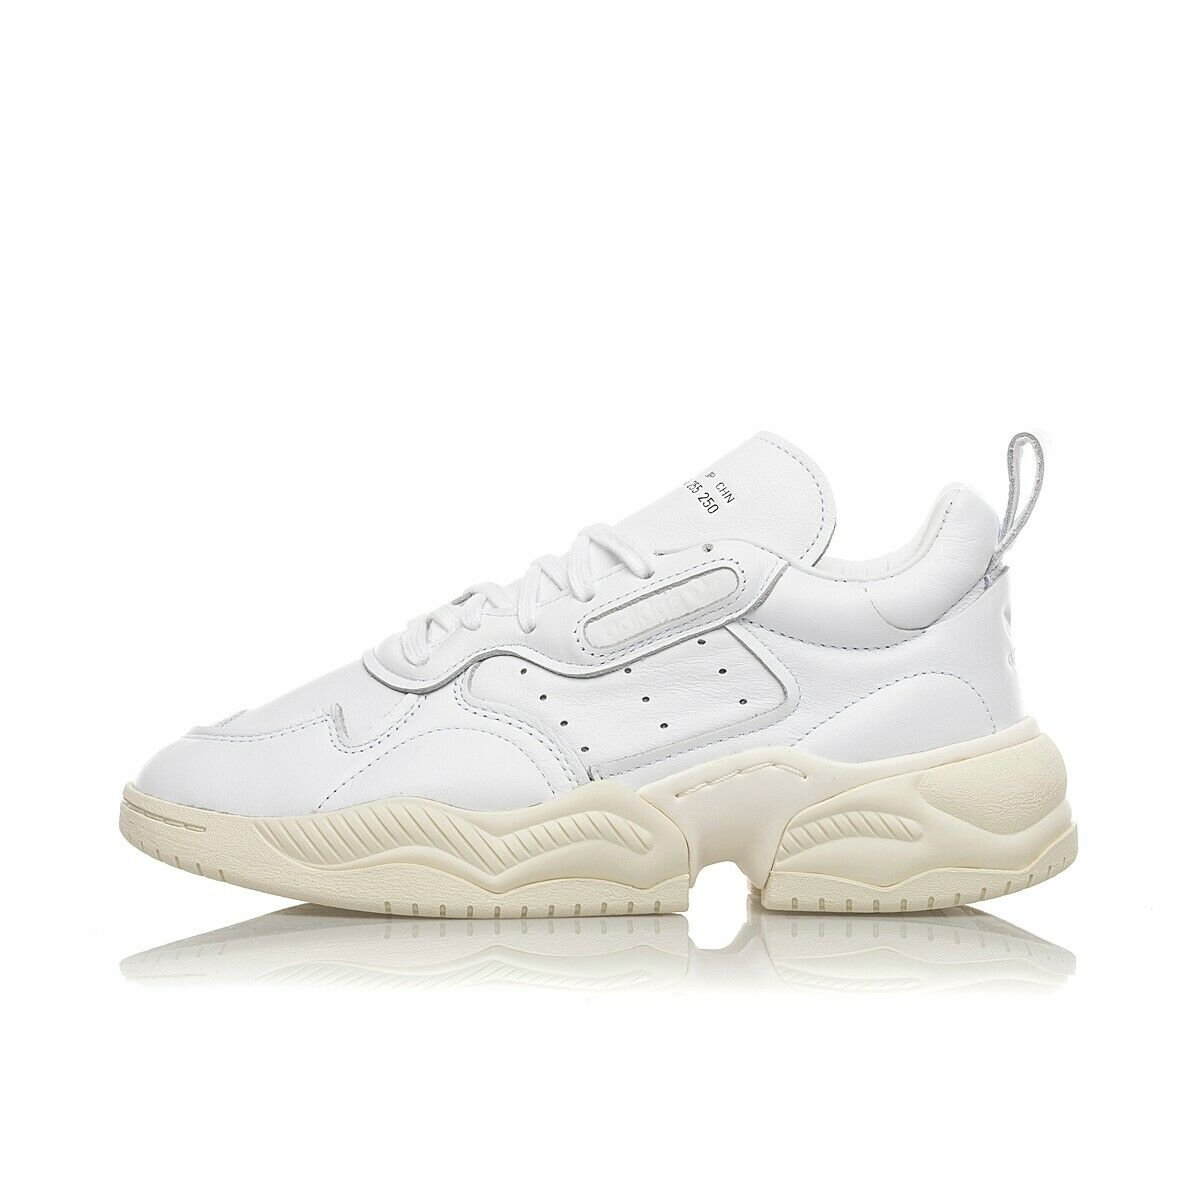 ADIDAS SUPERCOURT RX EF1894 lux pelle blanc limited home of classics unisex pre